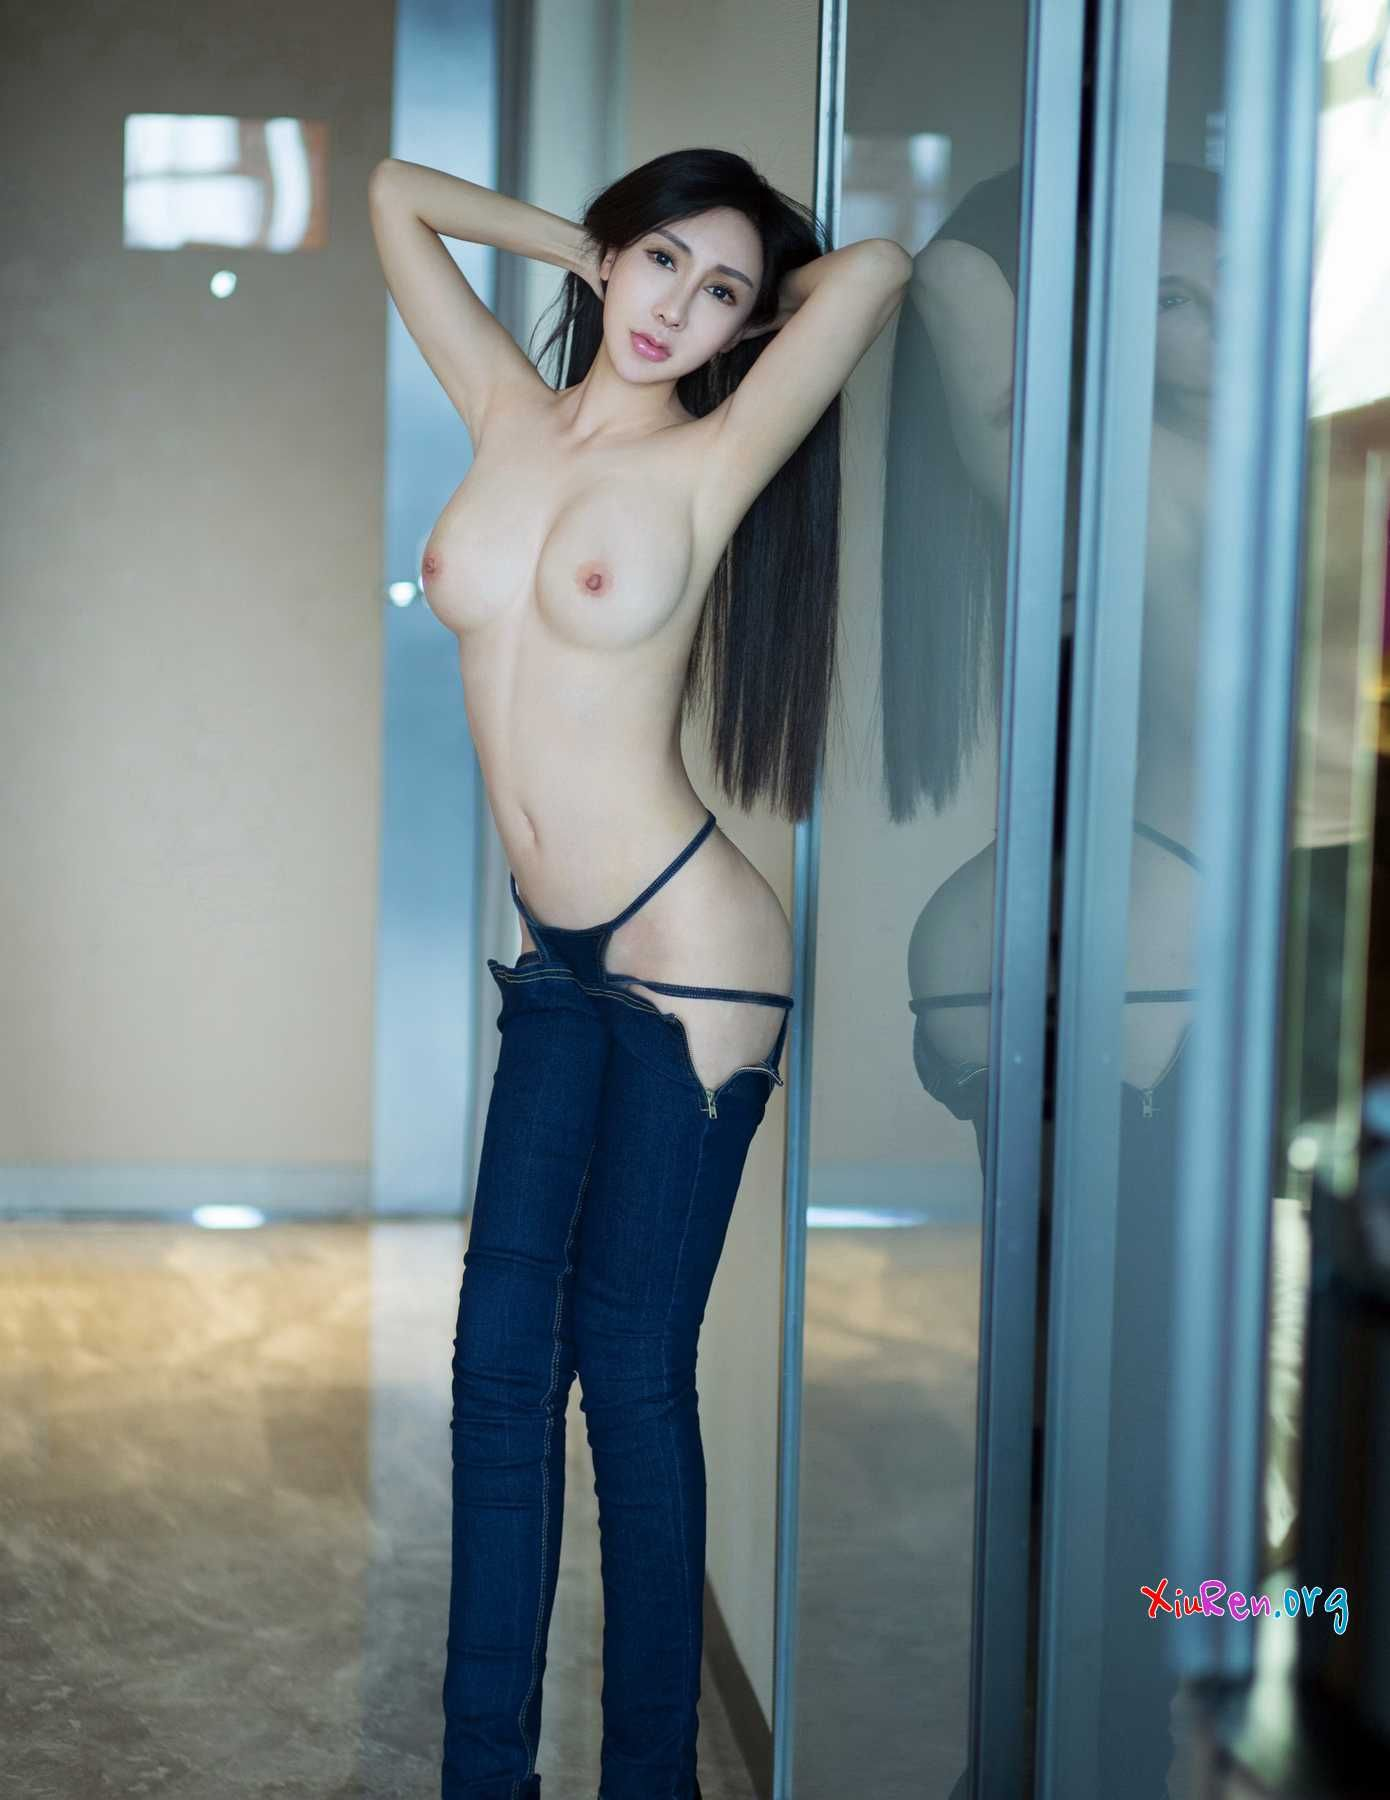 Korean naked hotel 8